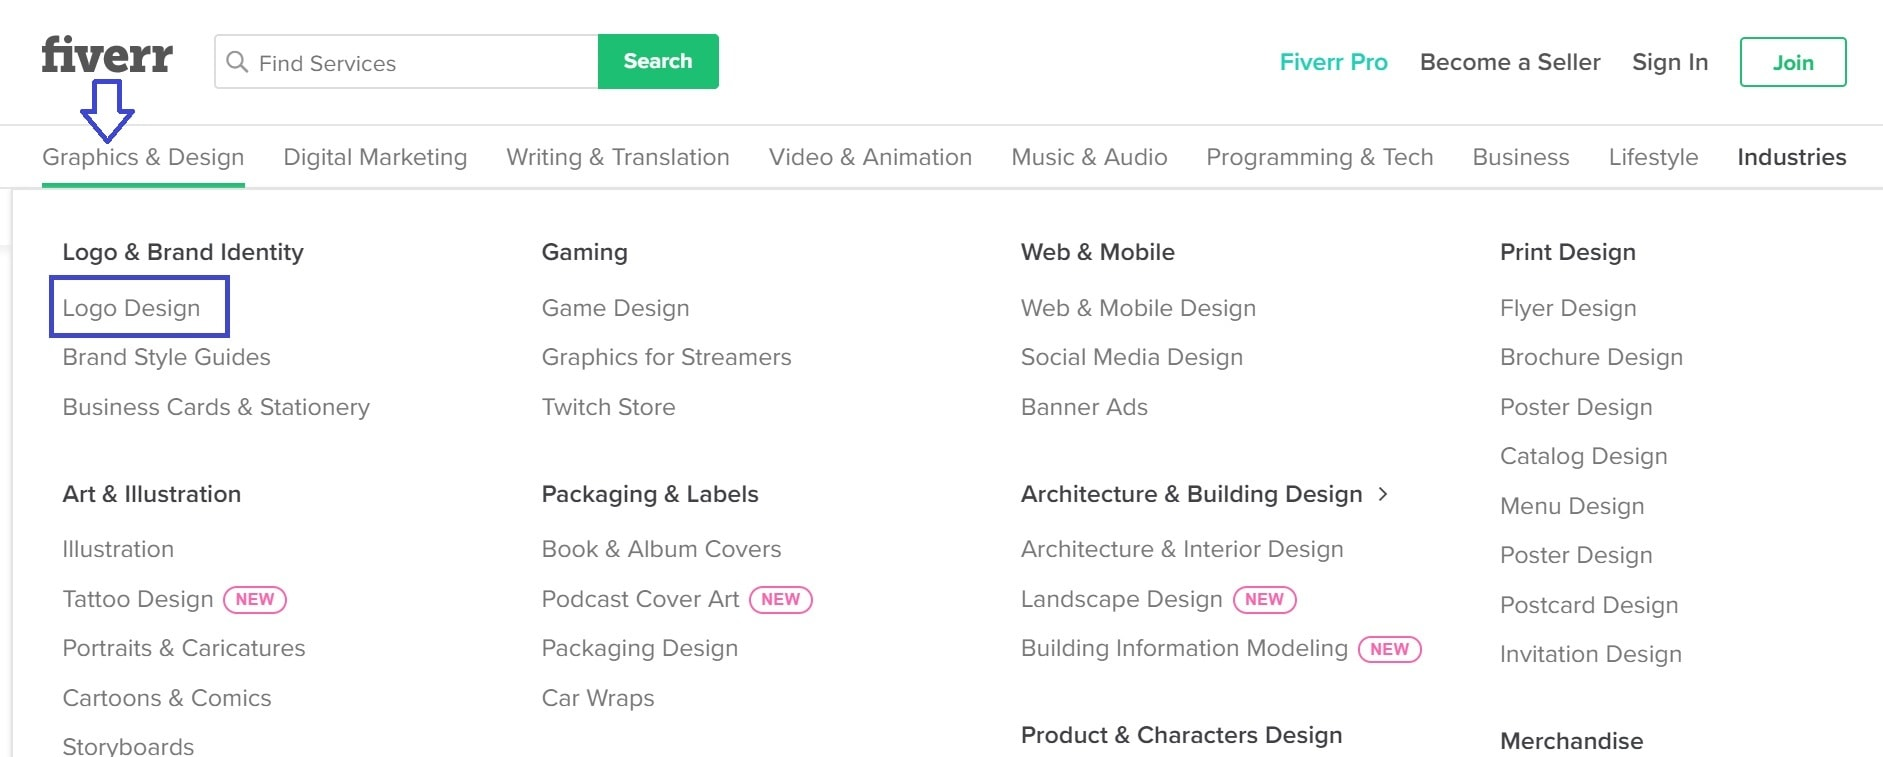 Fiverr screenshot - Logo design menu